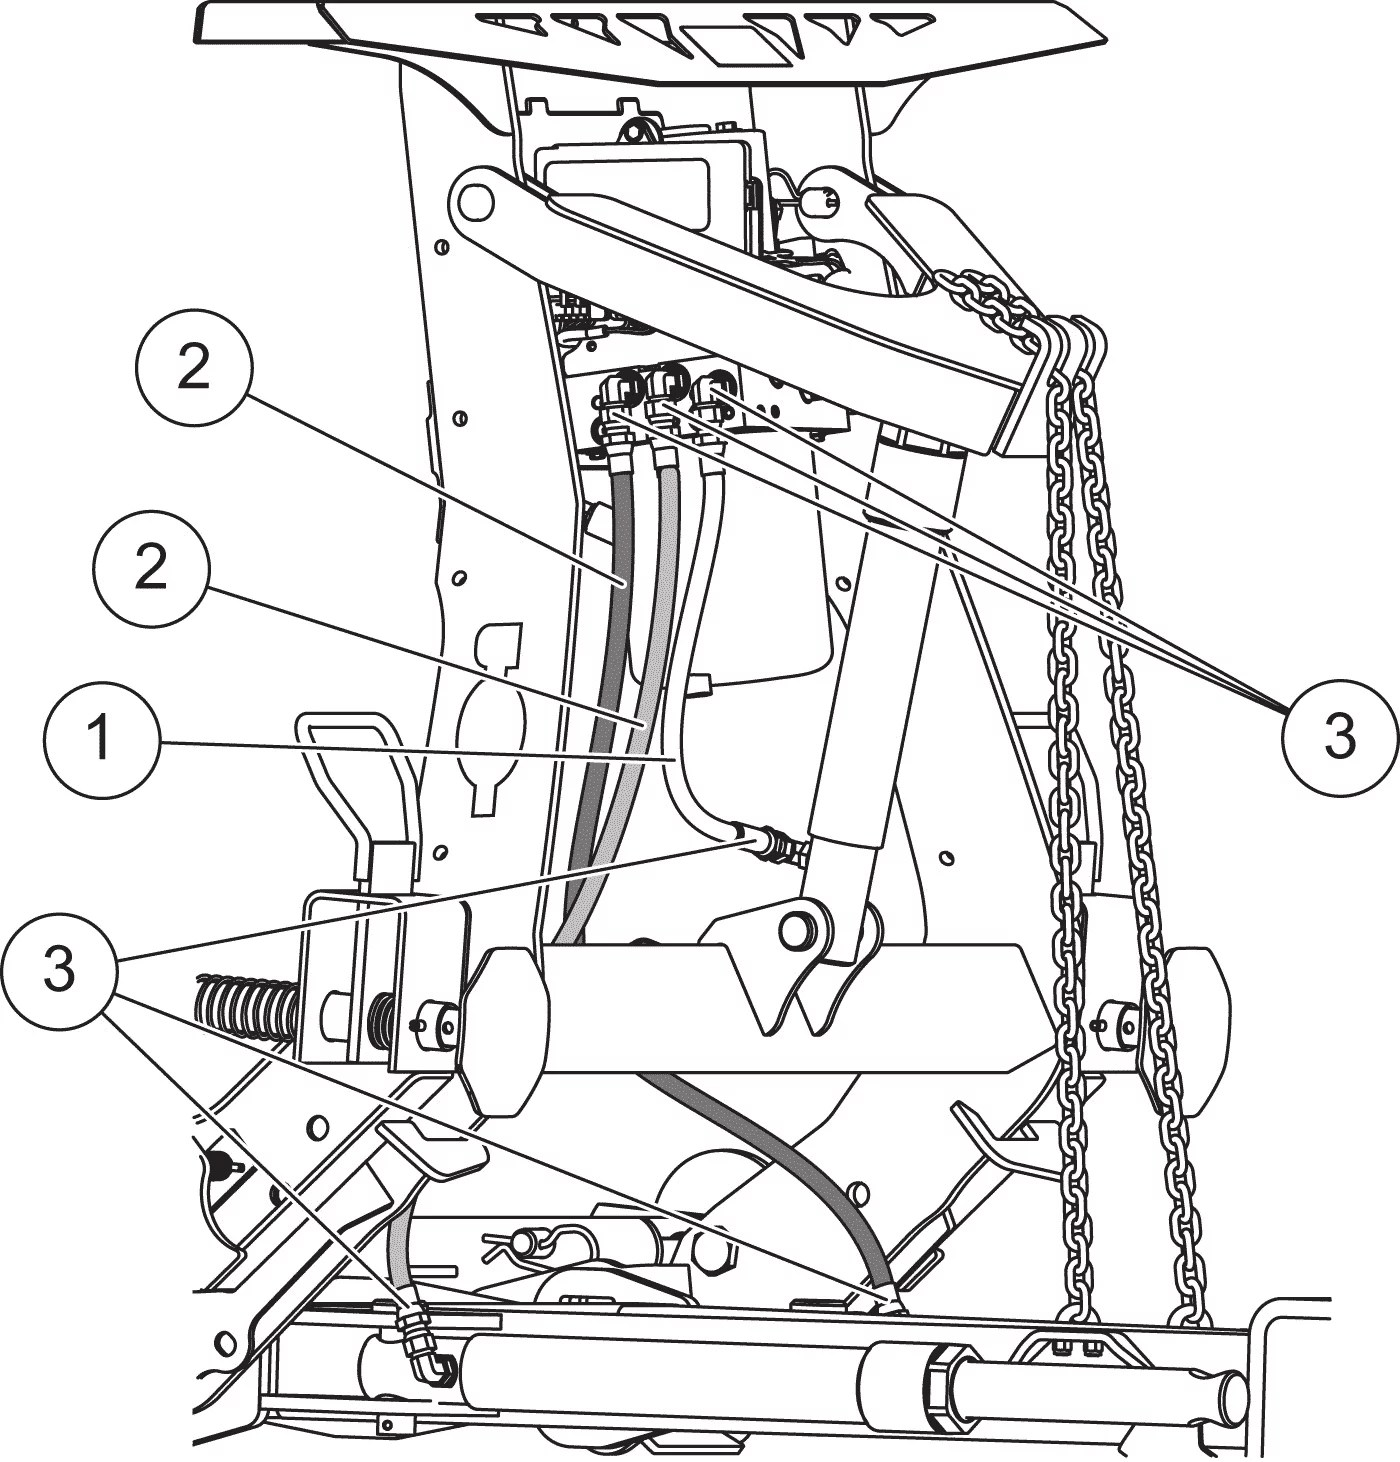 Diagram Of Western Plow